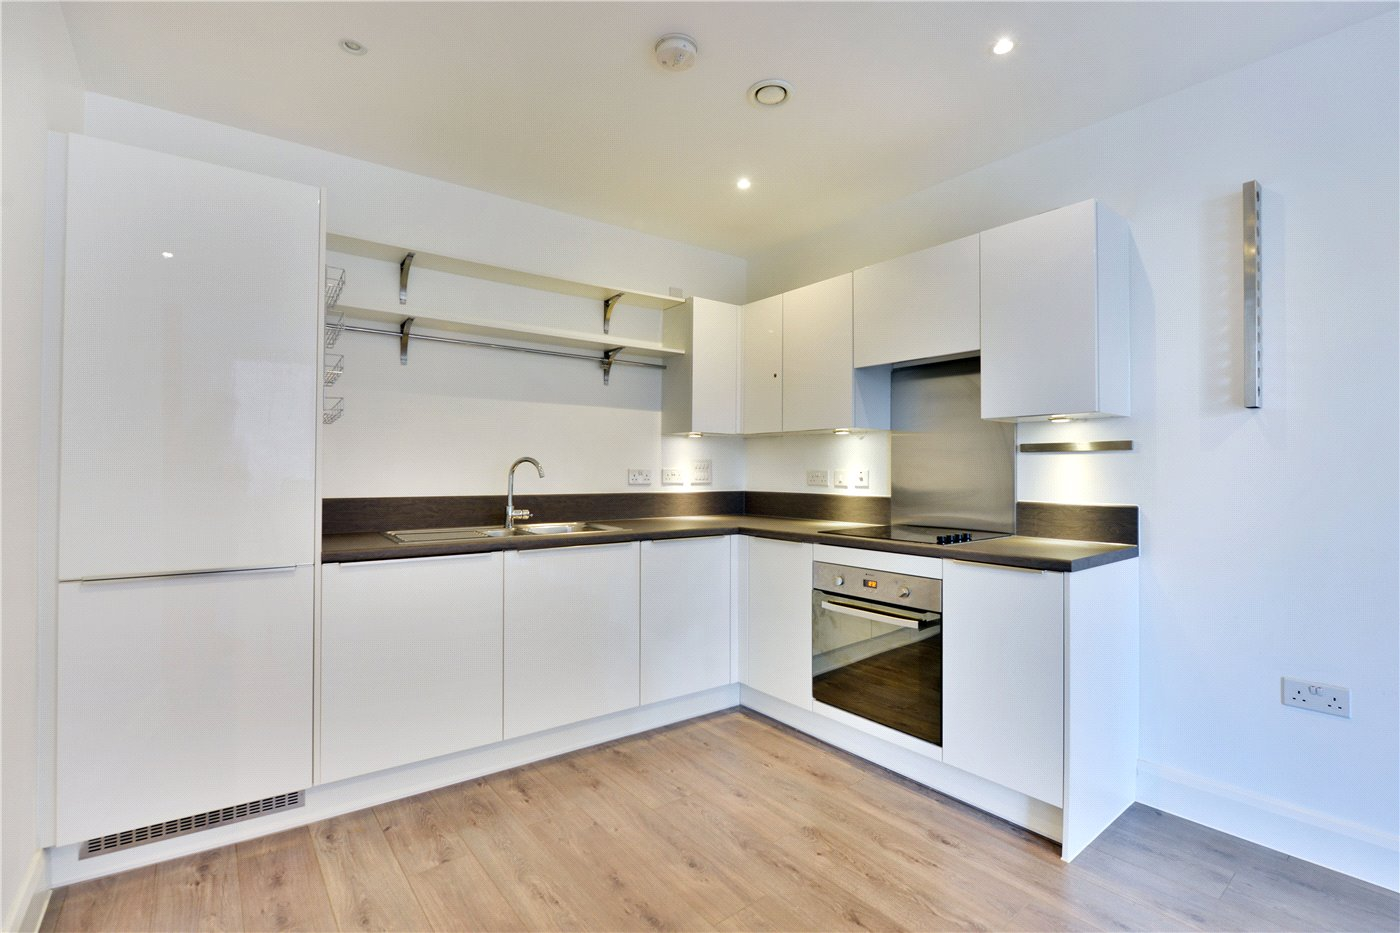 This property located at Hoey Court in London is a great example of an ideal rental investment